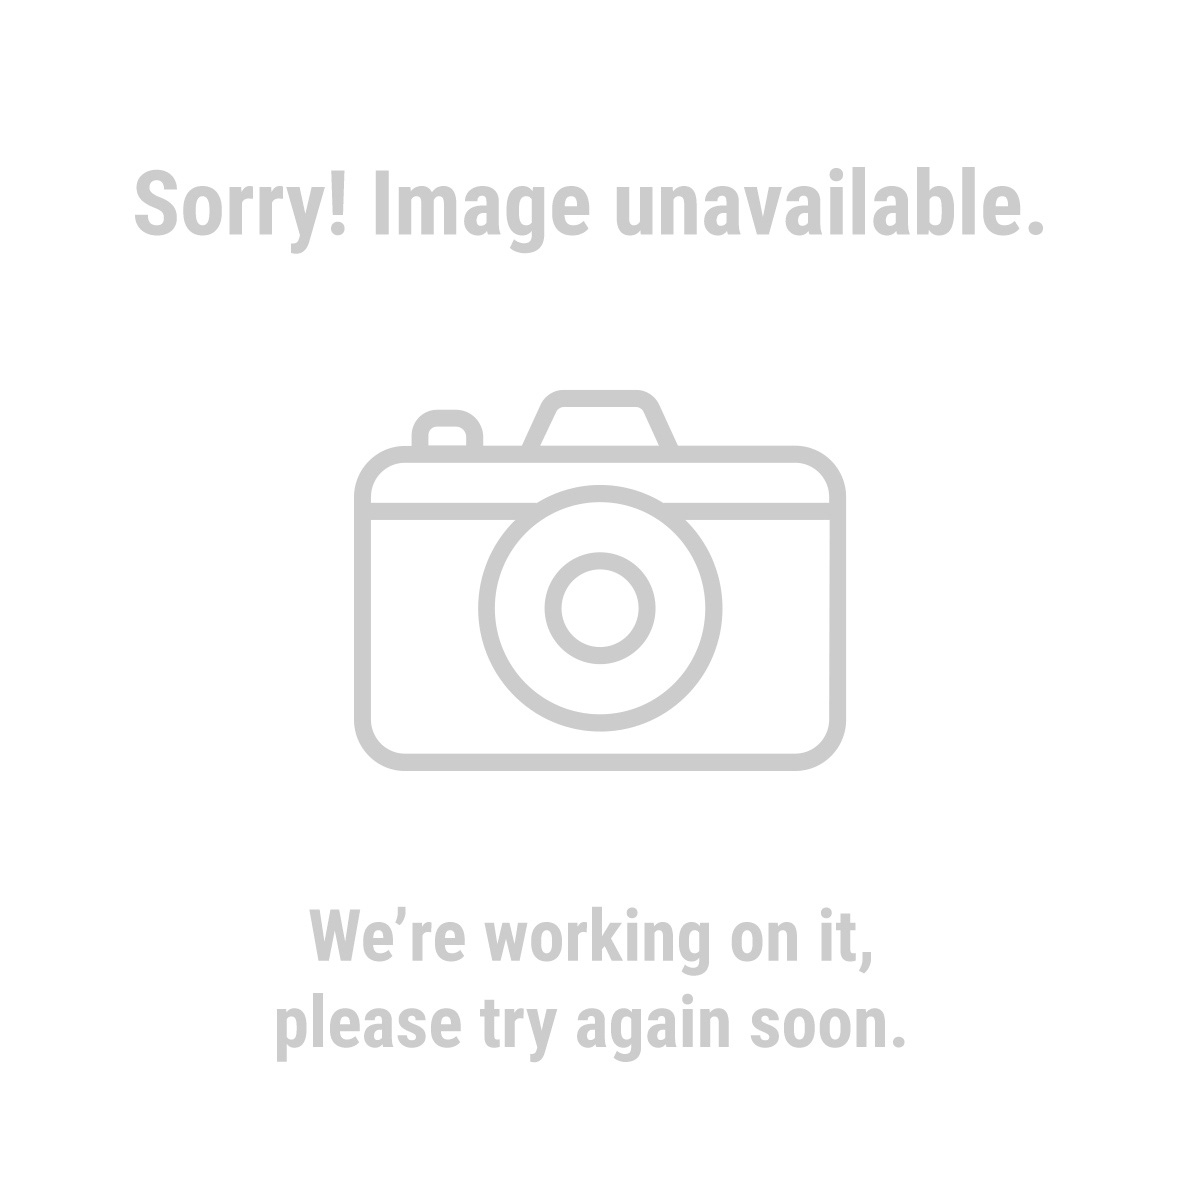 Cen-Tech 67143 Digital Mini Moisture Meter